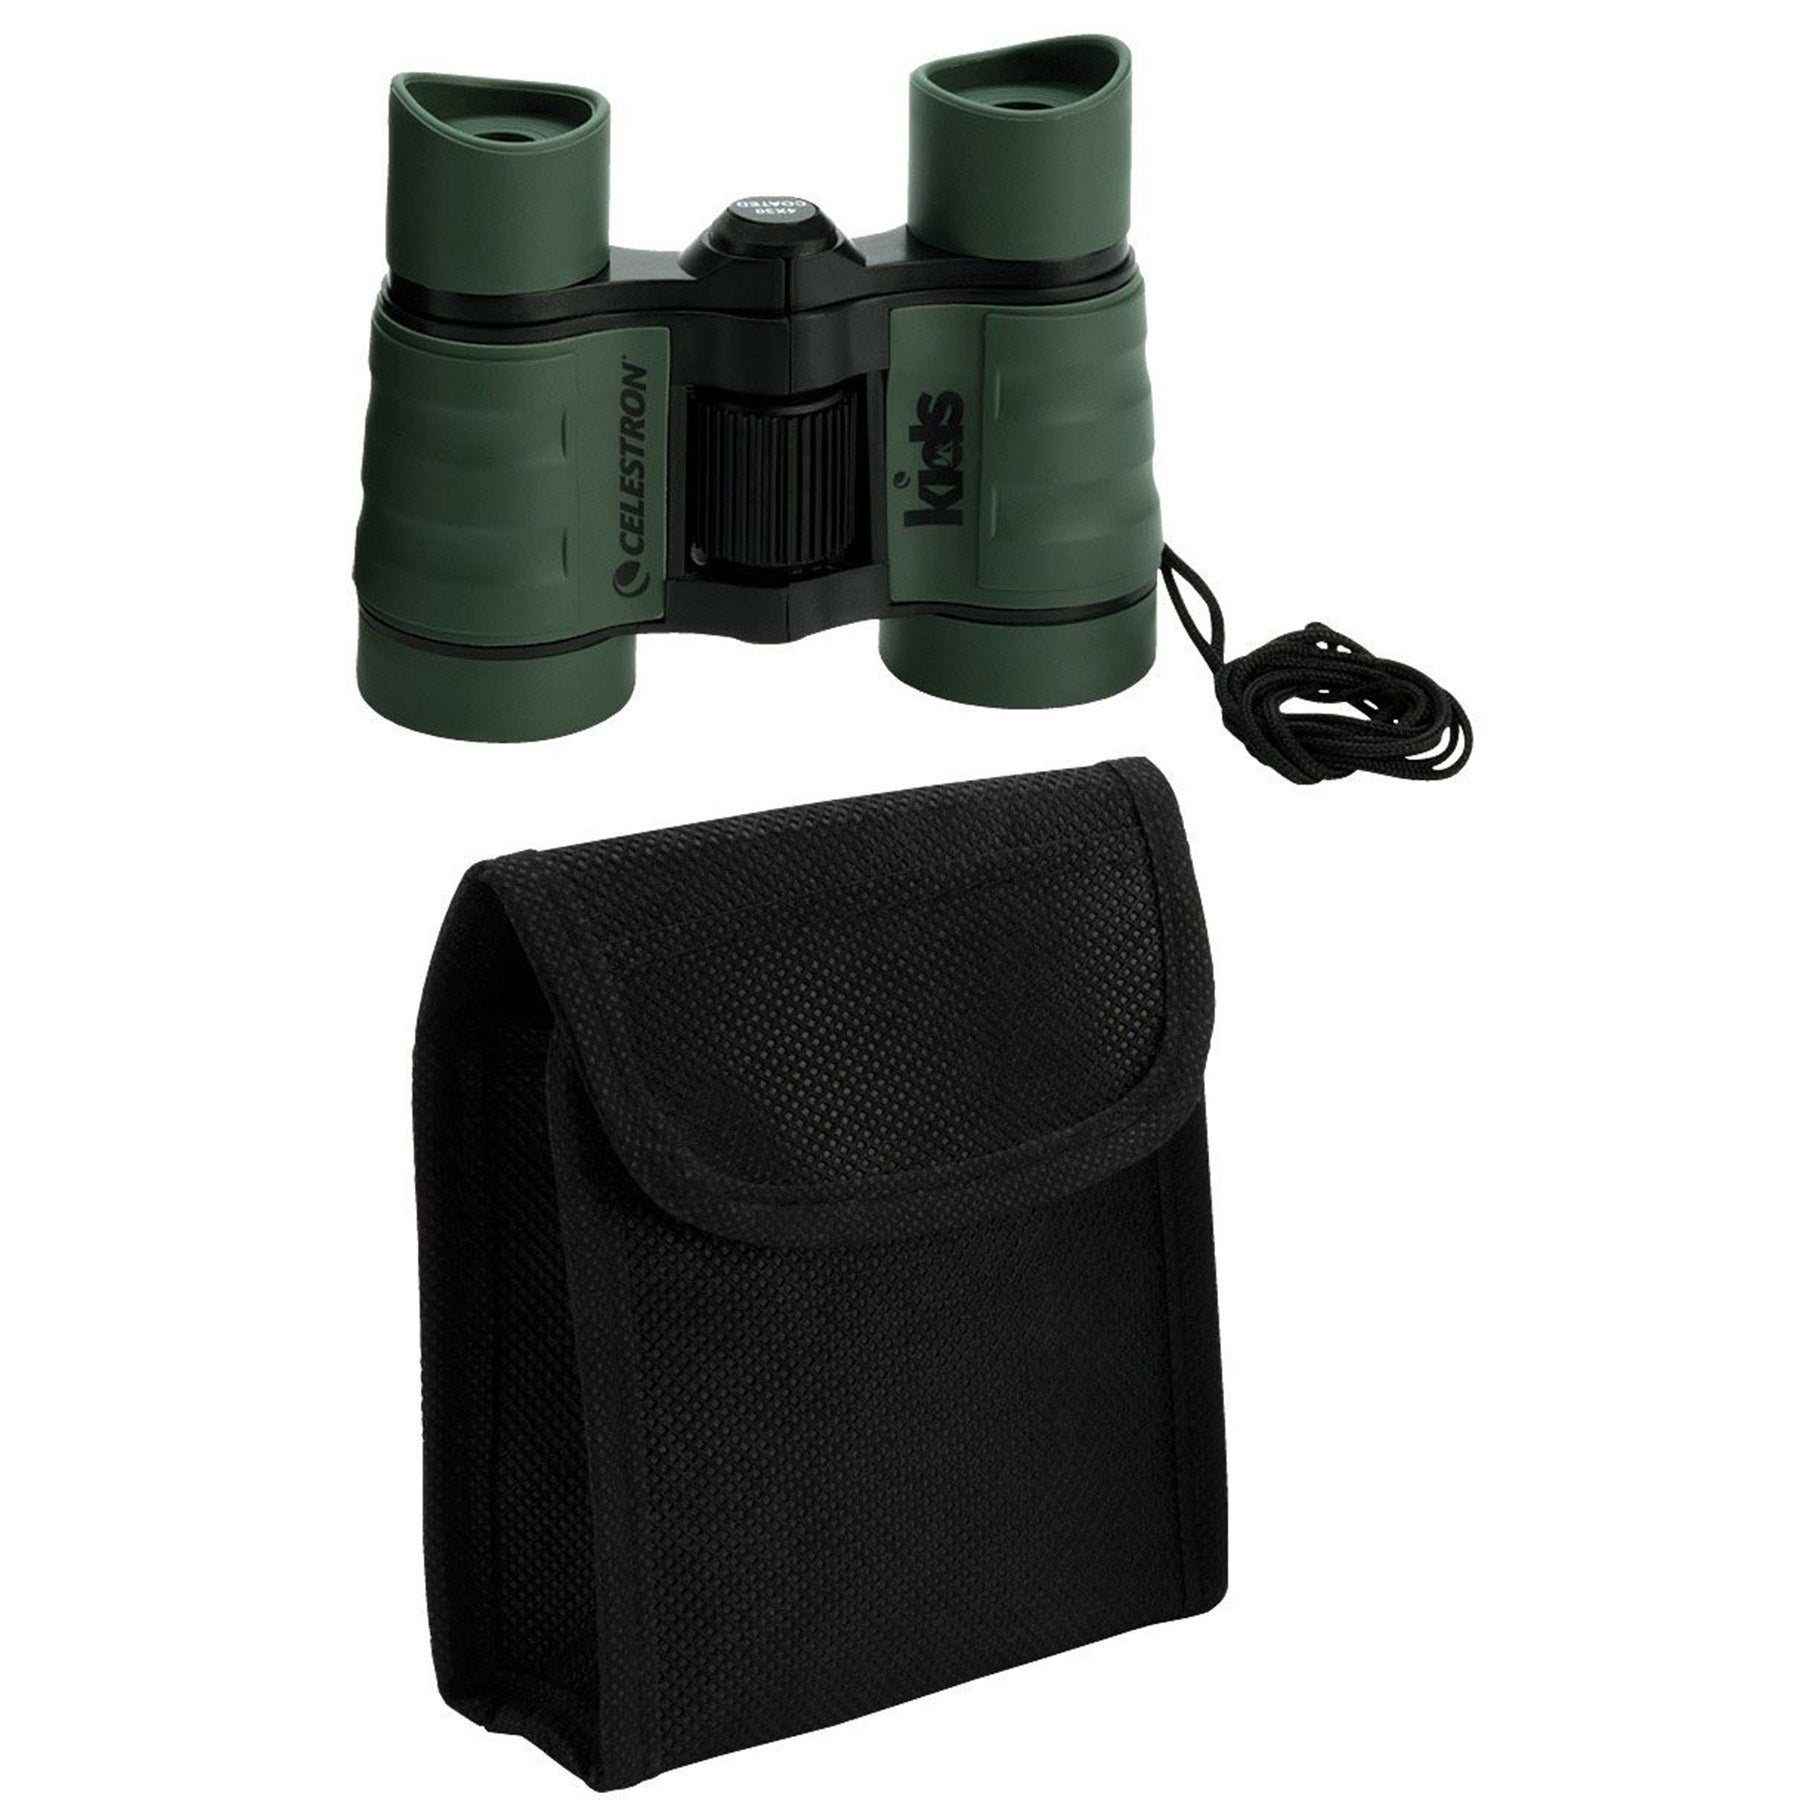 celestron kids binoculars, 4x magnification, 30mm lenses, age rated 6+